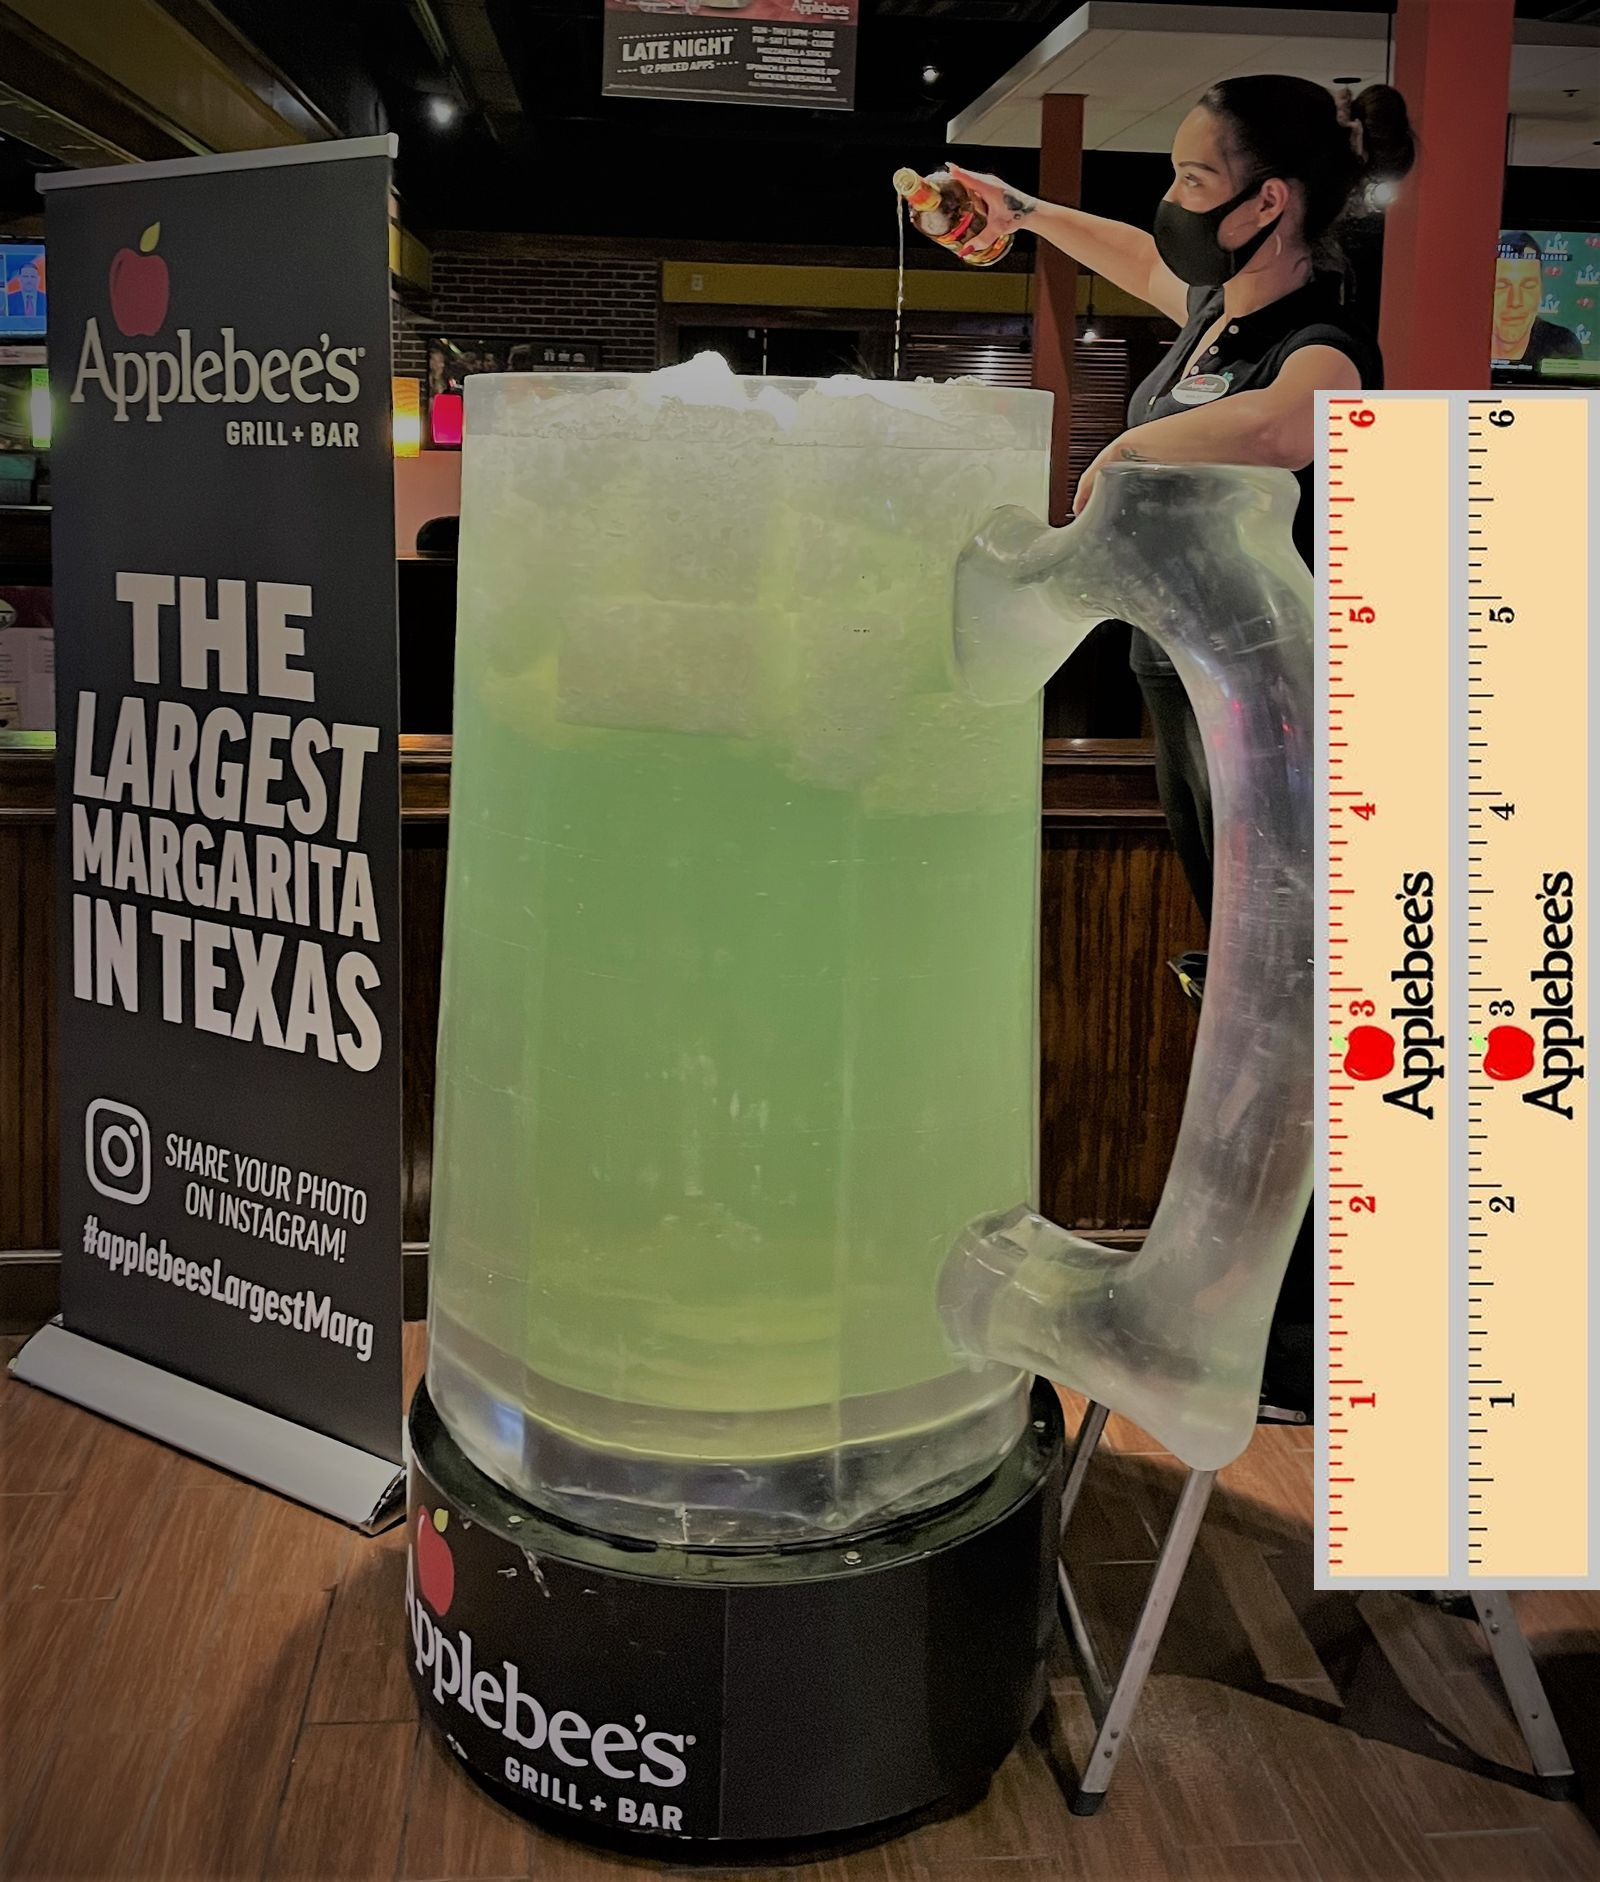 Applebee's Restaurants in the Dallas/Fort Worth Metroplex Bring Back their DOLLARITA - Margaritas for a Buck - for One Day Only: National Margarita Day, Monday, February 22